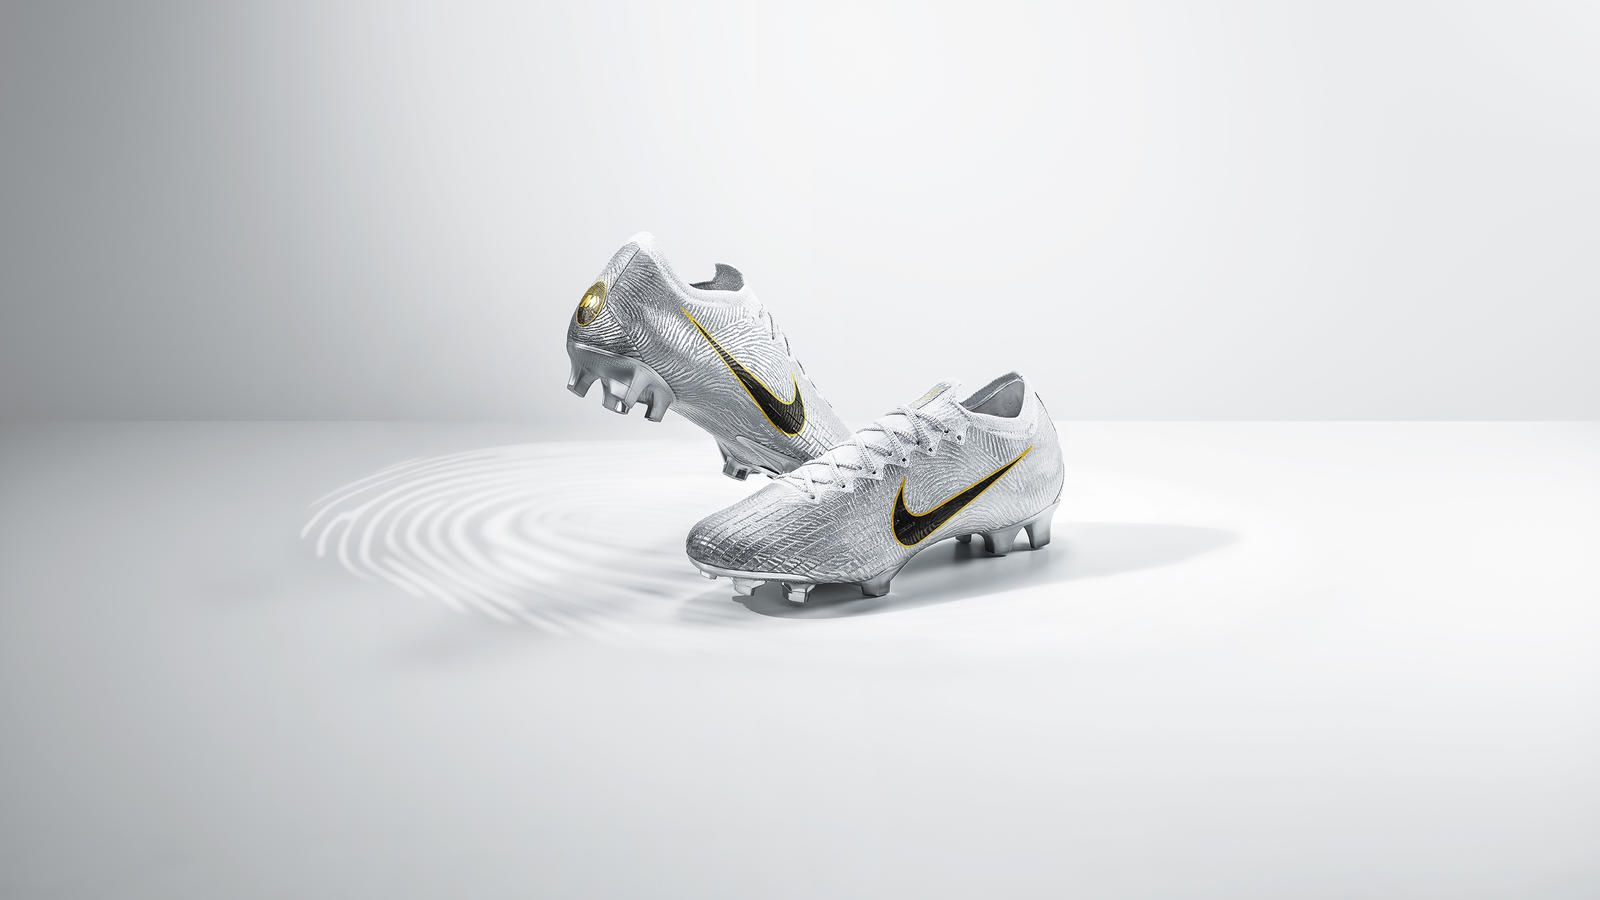 nike-golden-touch-mercurial